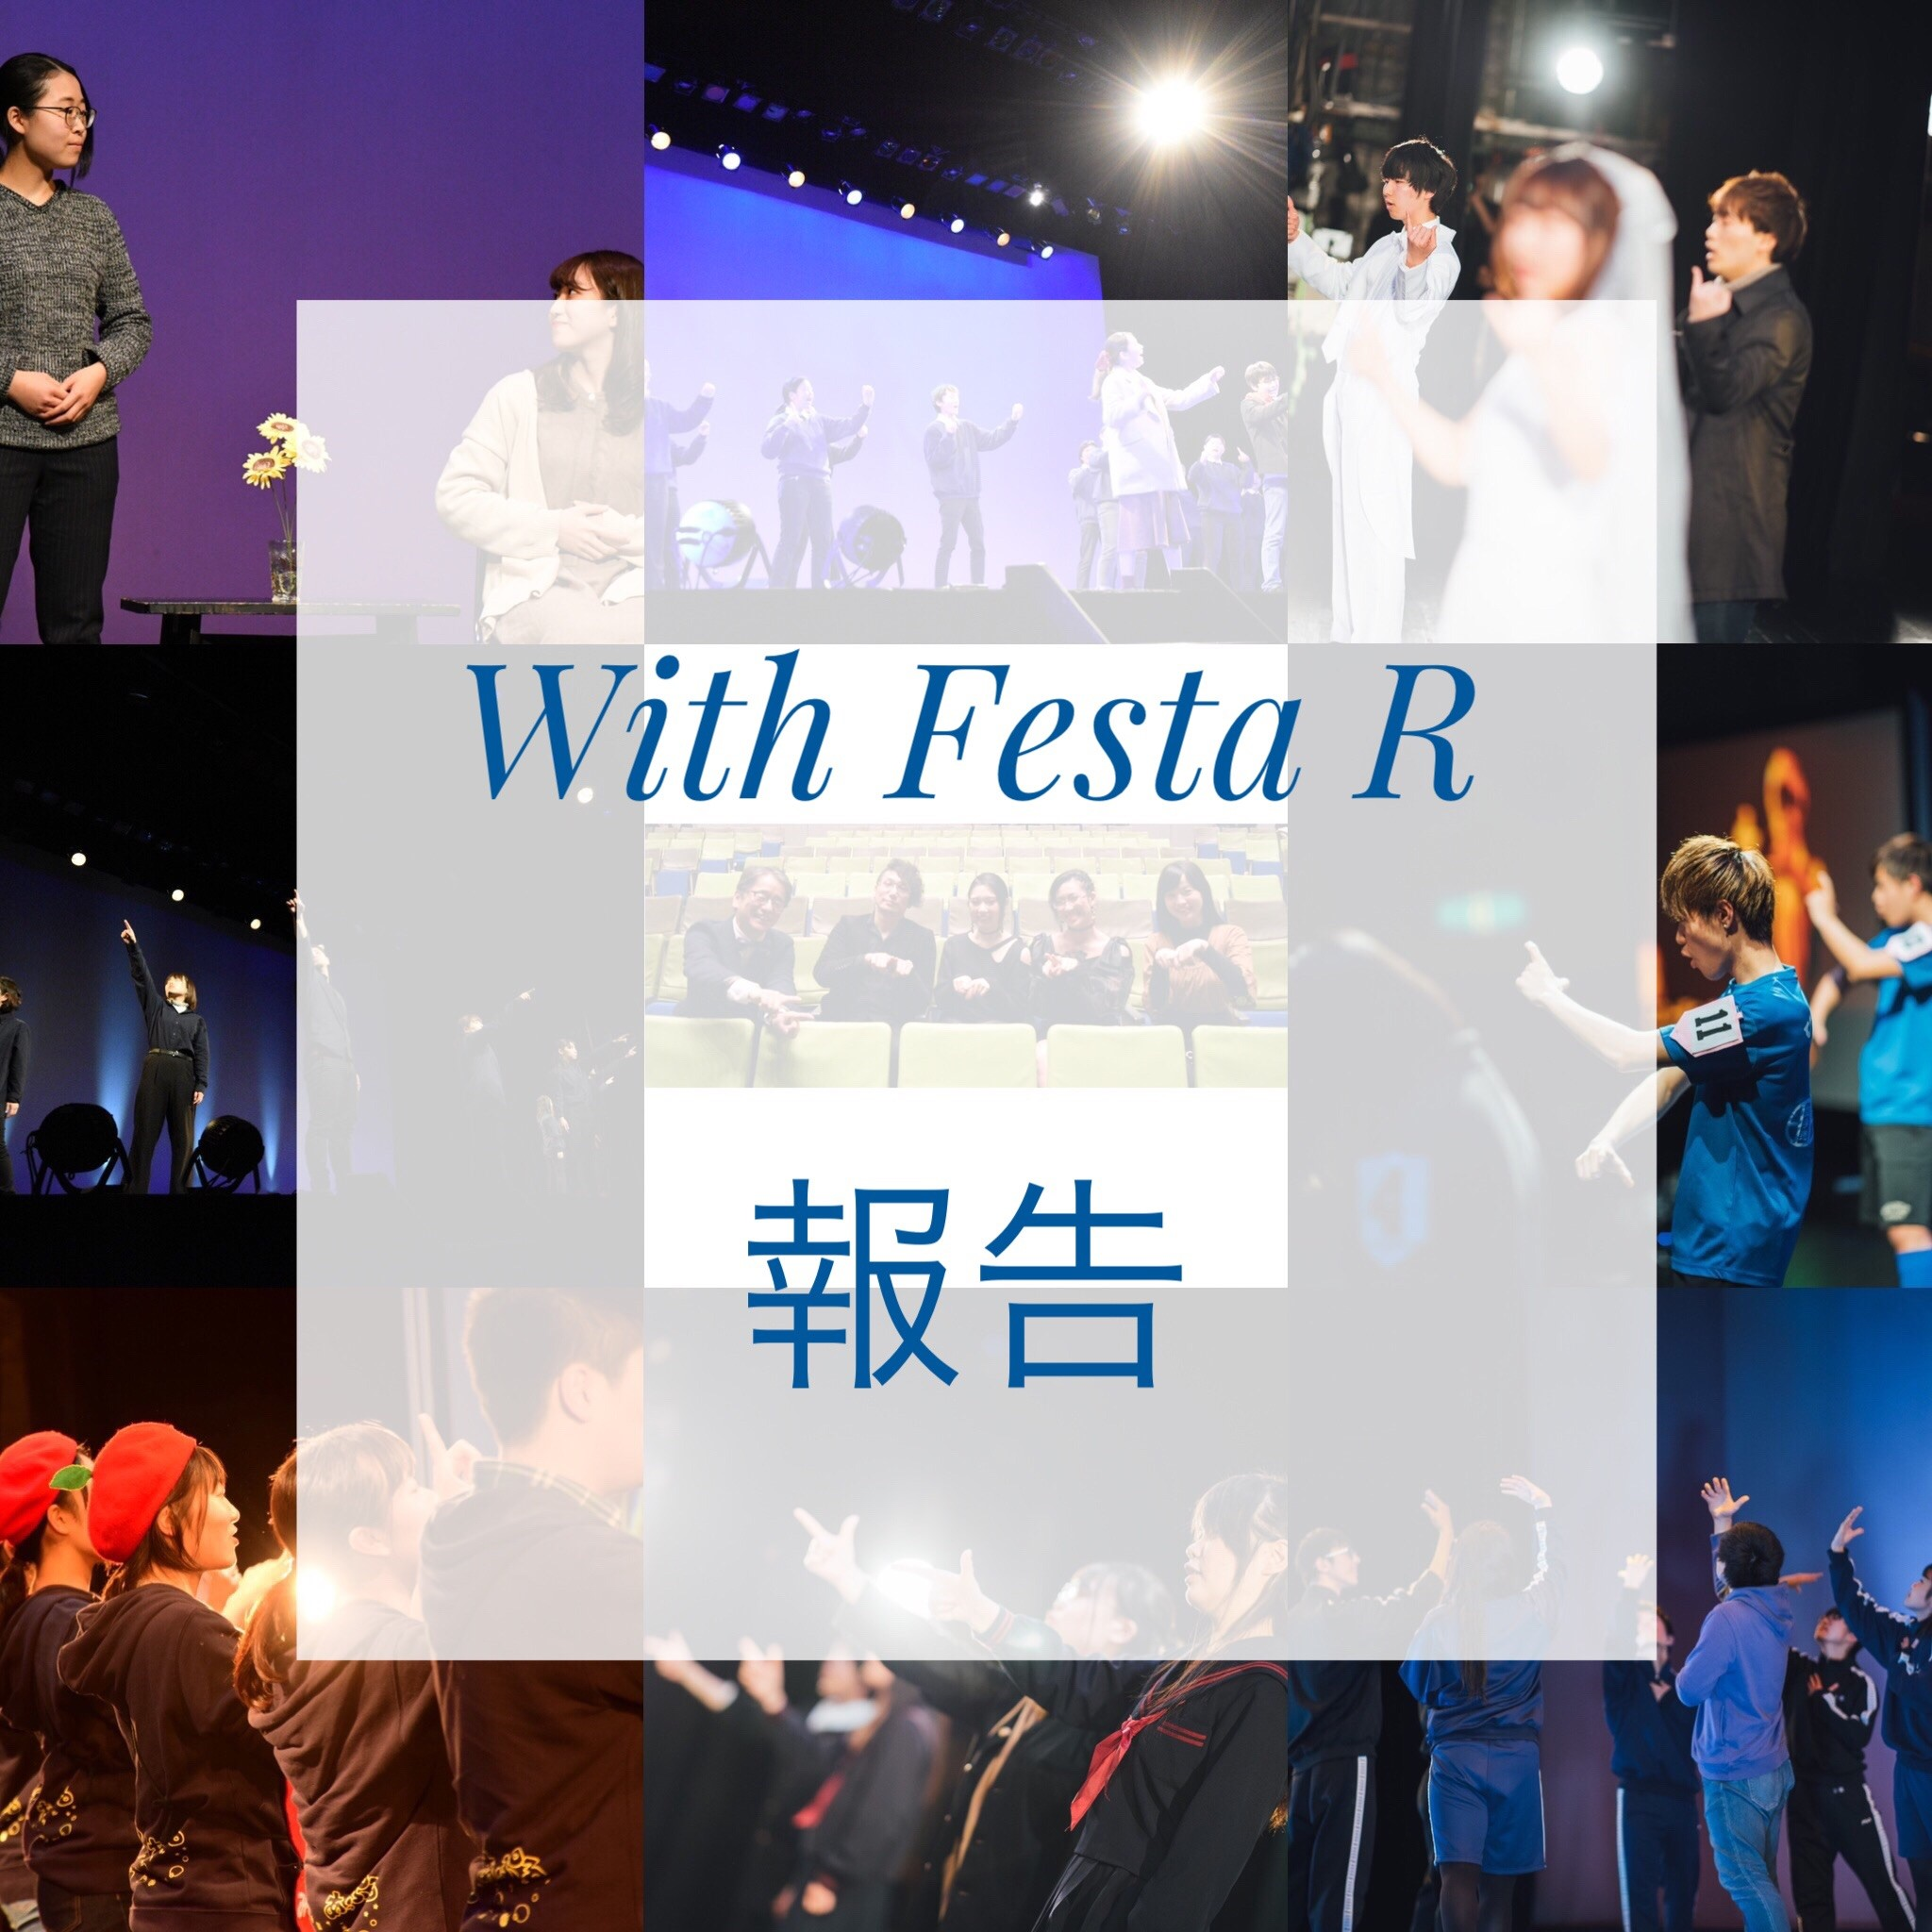 With Festa R レポート